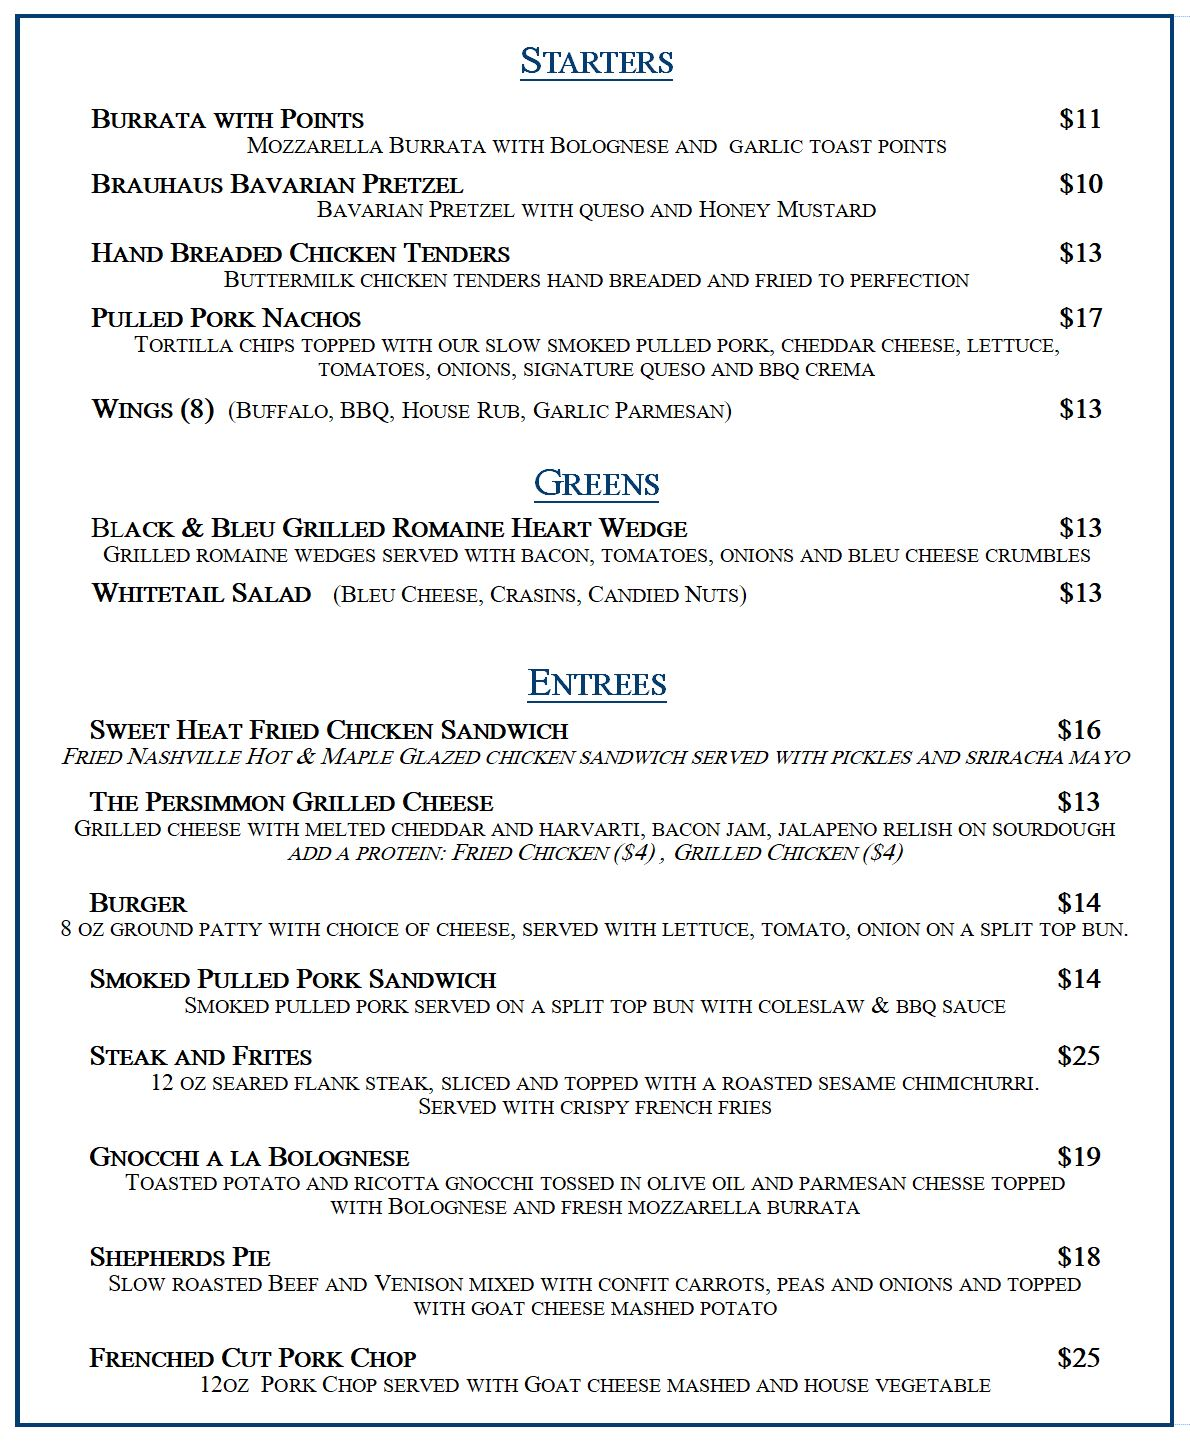 2 15 menu No typos